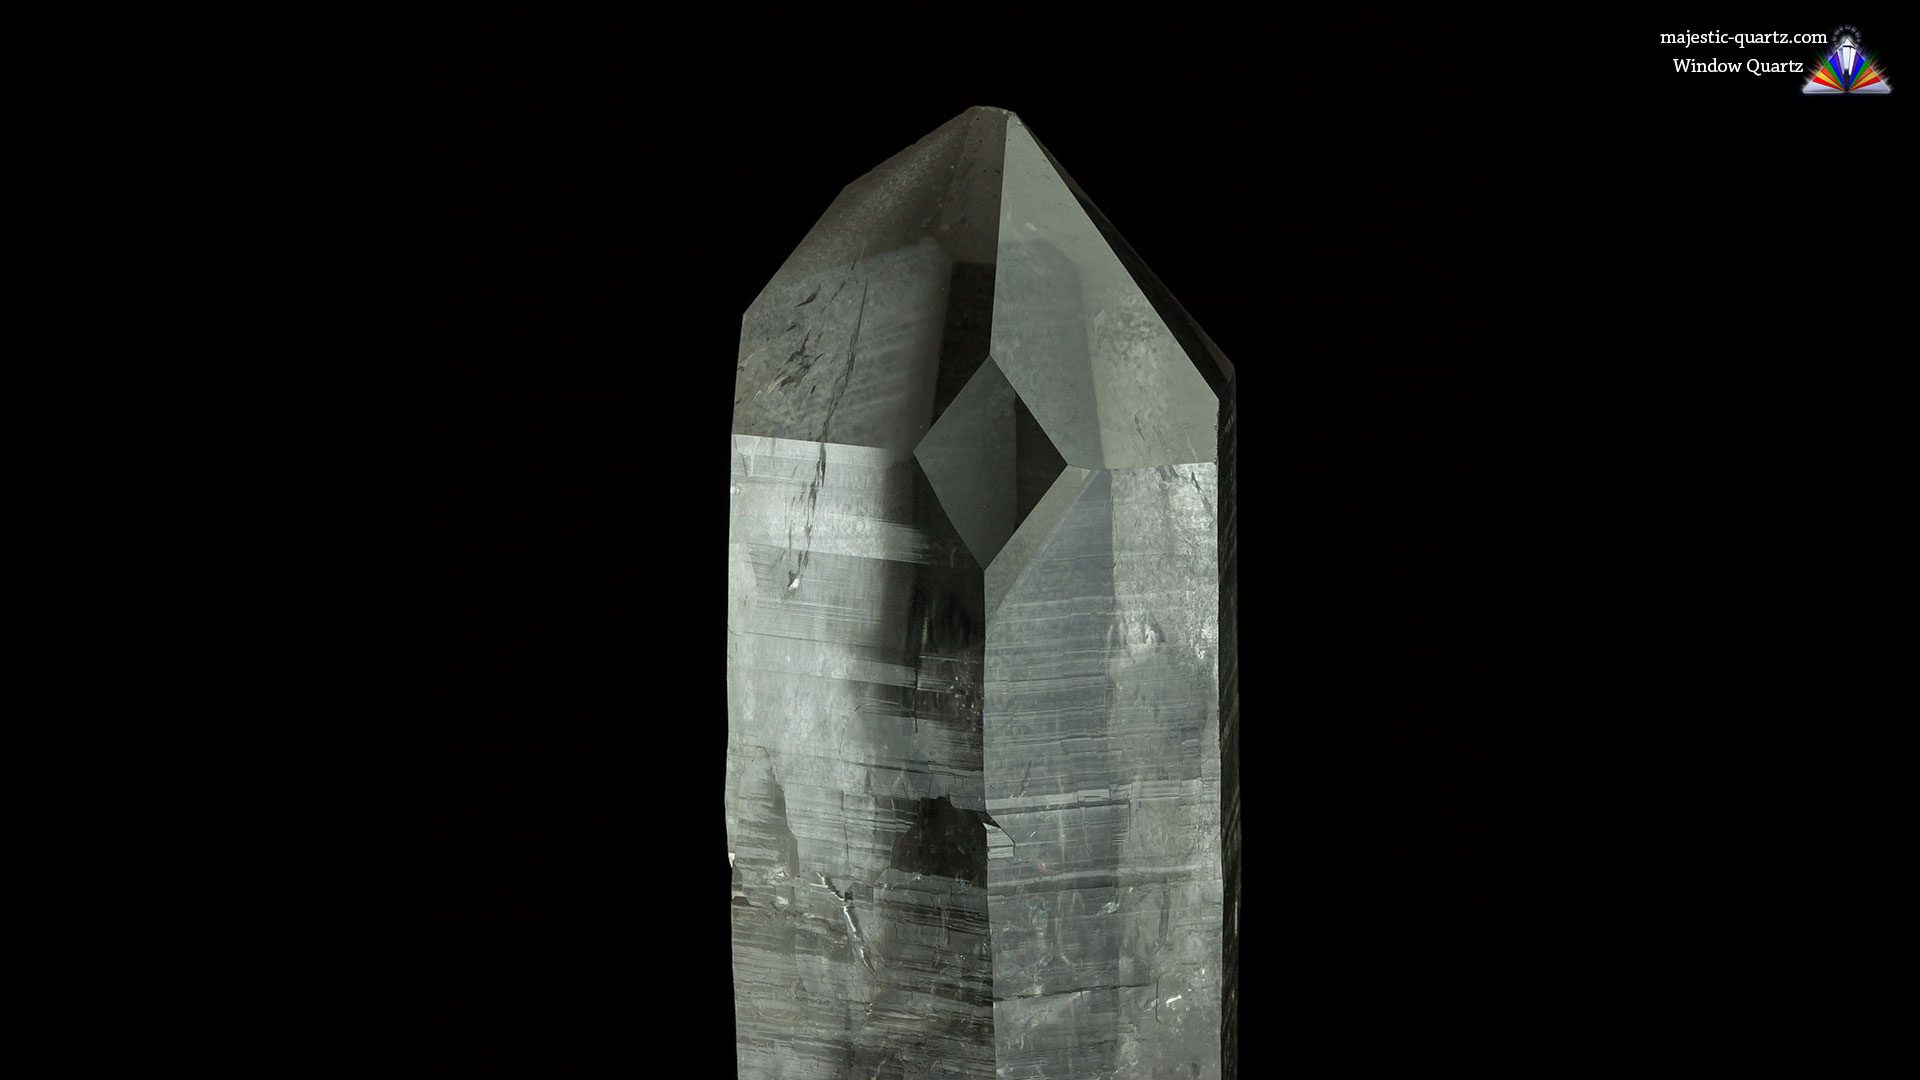 Window Quartz Properties and Meaning - Photograph by Anthony Bradford